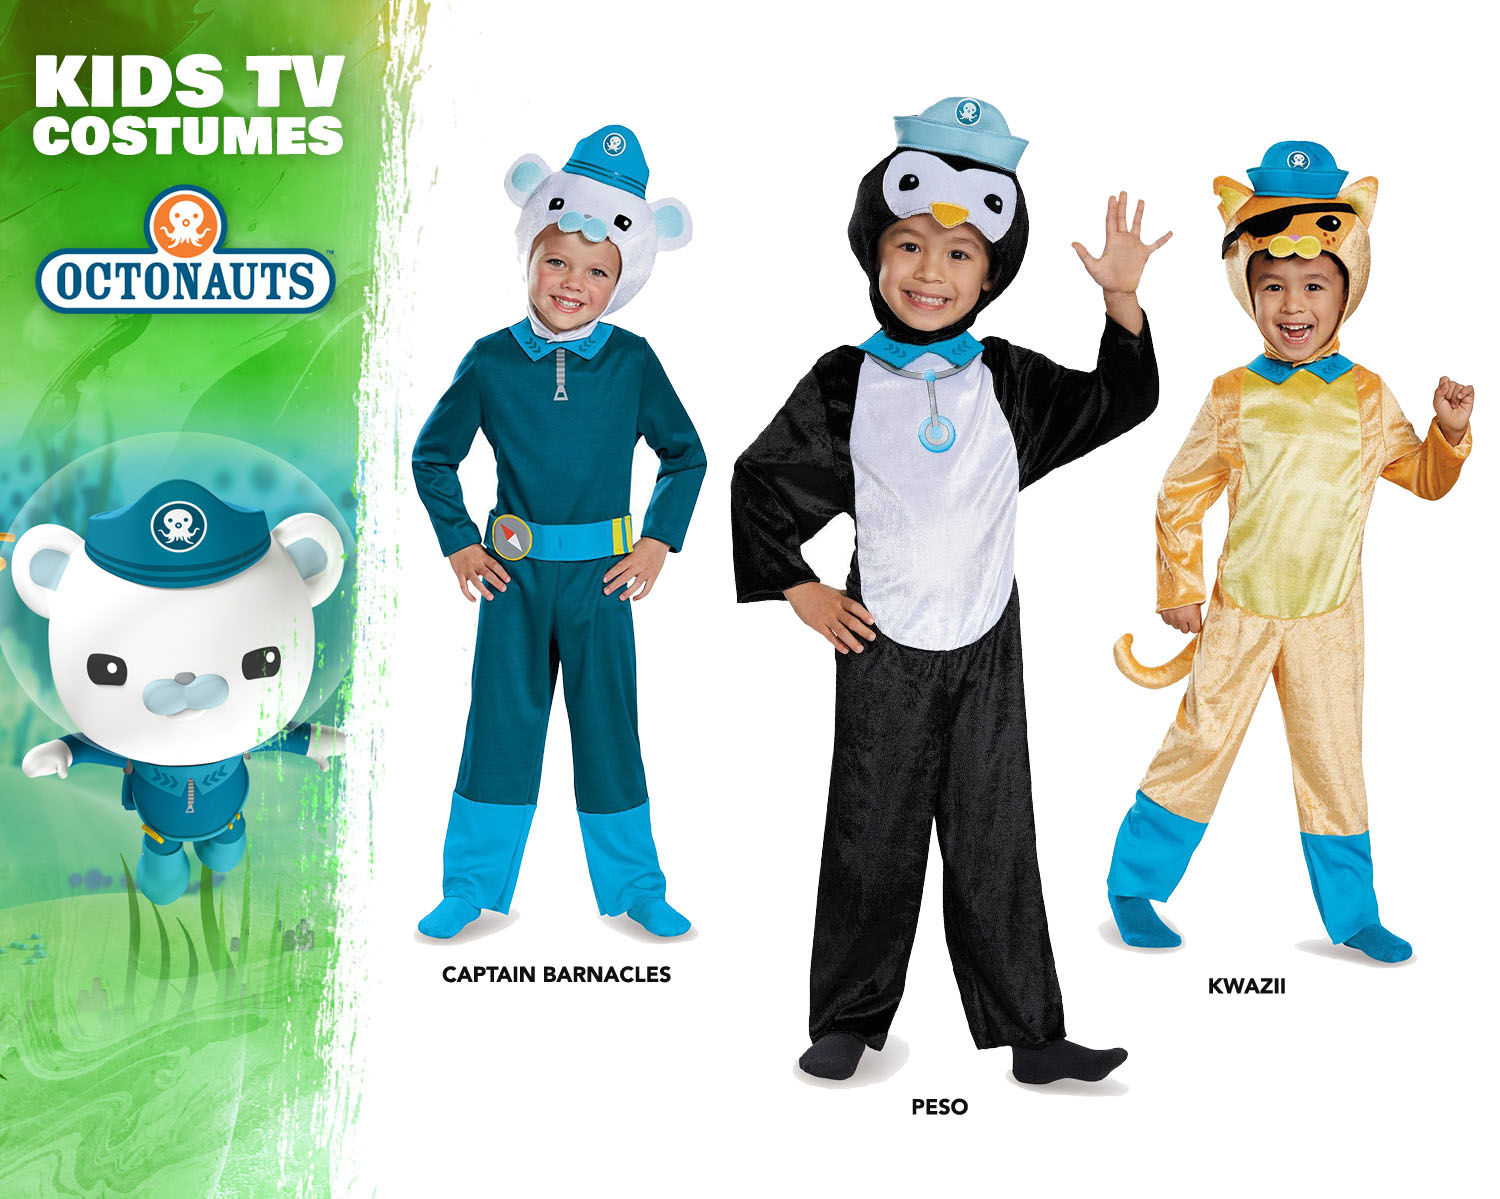 Octonauts Costume Ideas